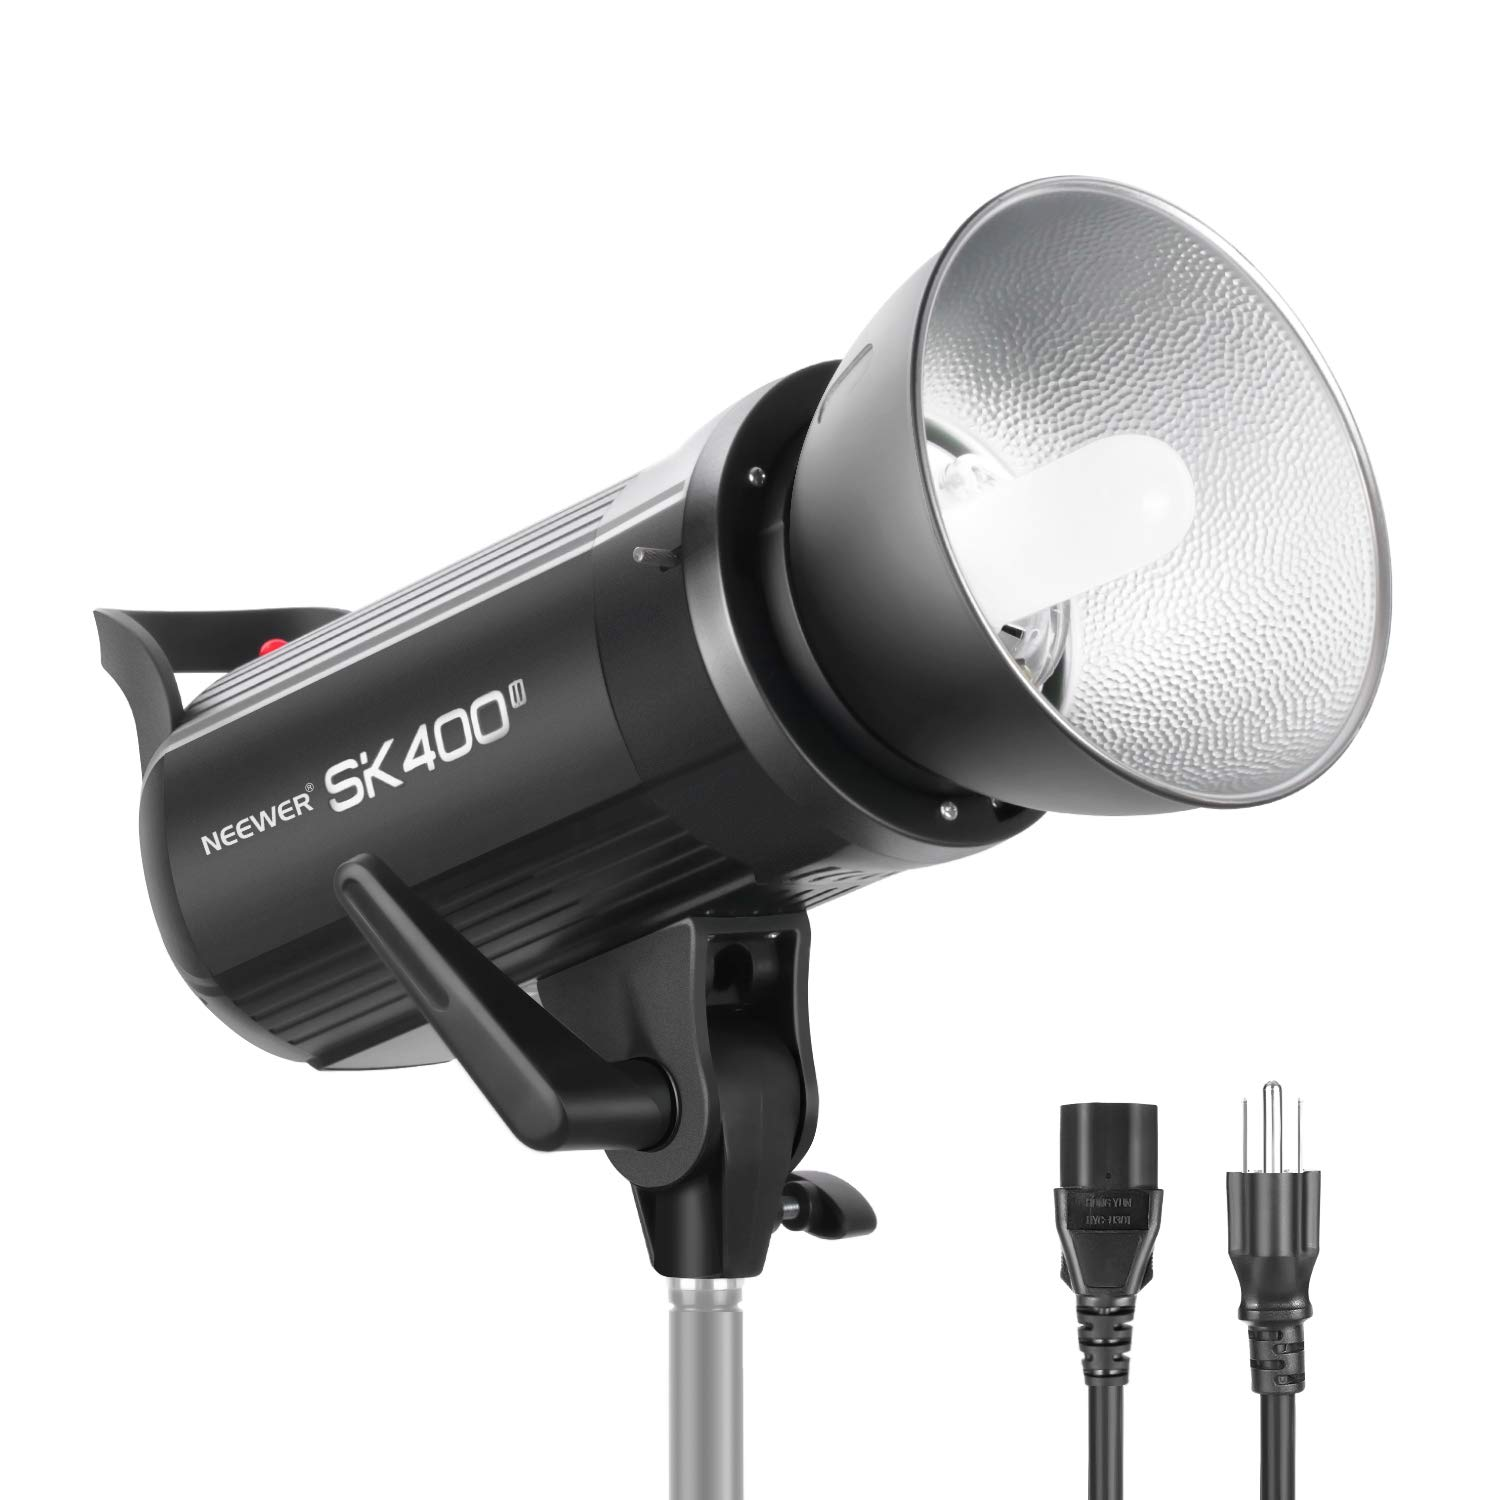 Neewer SK400II Studio Strobe 400W, 2.4G Wireless System GN65 5600K Monolight with Bowens Mount 150W Modeling Lamp, Large LCD Panel, Outstanding Output Stability, Anti-Preflash for Studio Shooting by Neewer